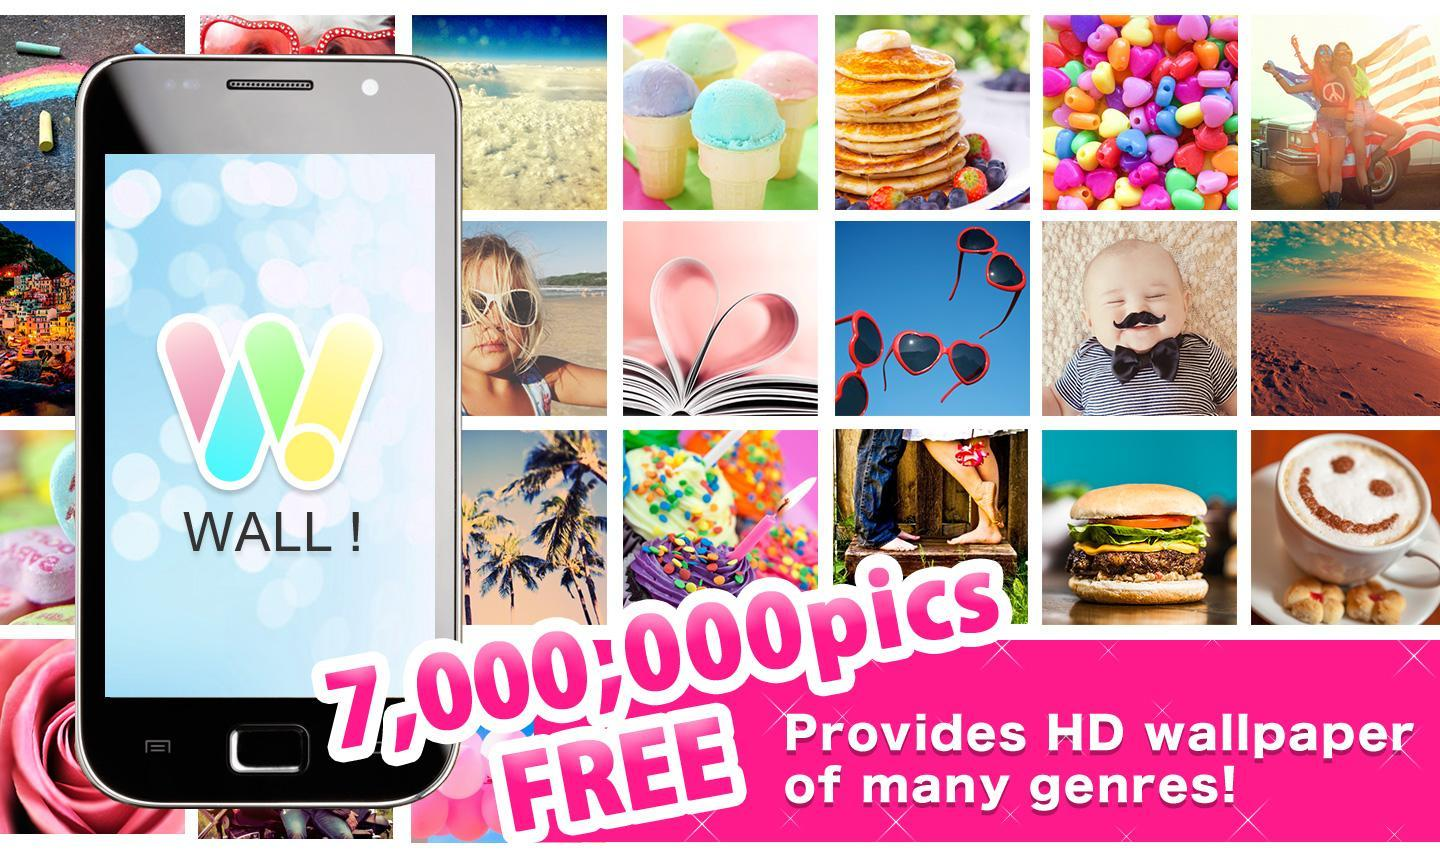 Android 用の 壁紙アプリwall 無料高画質 700万枚以上 Apk を